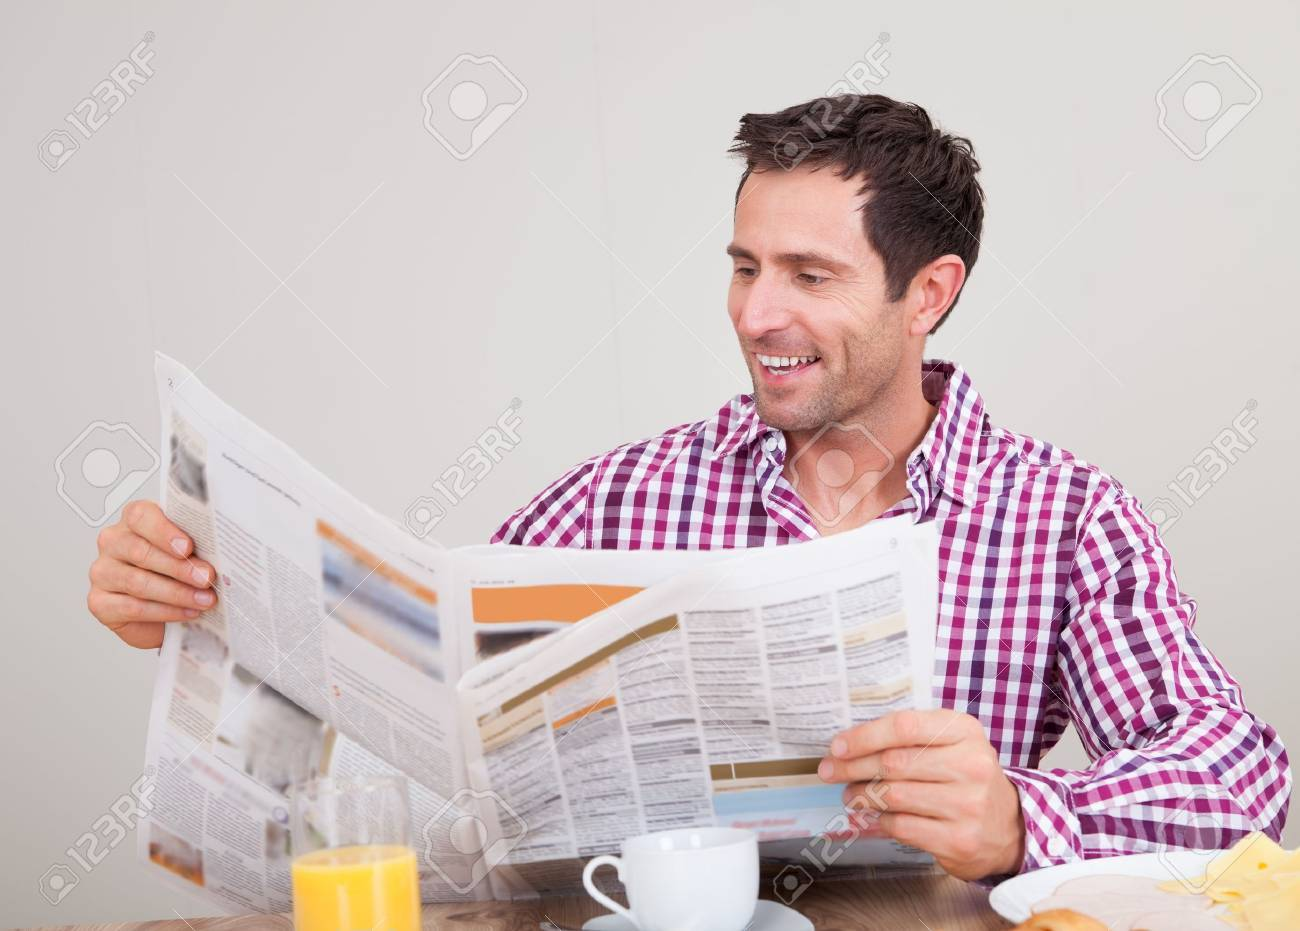 portrait of young man reading newspaper at breakfast, indoors stock